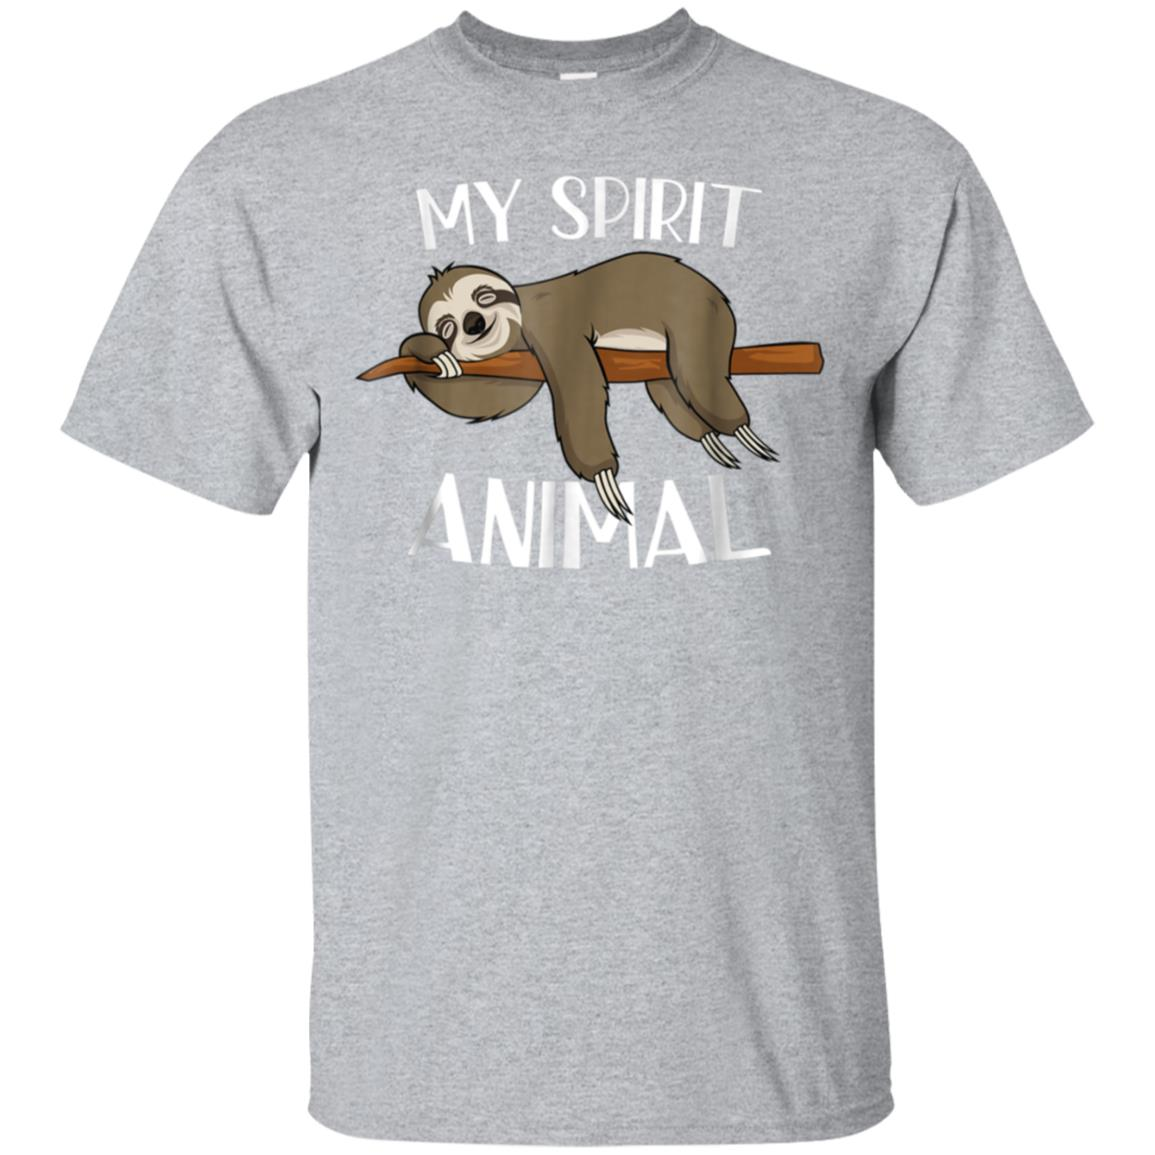 My Spirit Animal Funny Sloth T-shirt Lazy Napping Gift Tee 99promocode